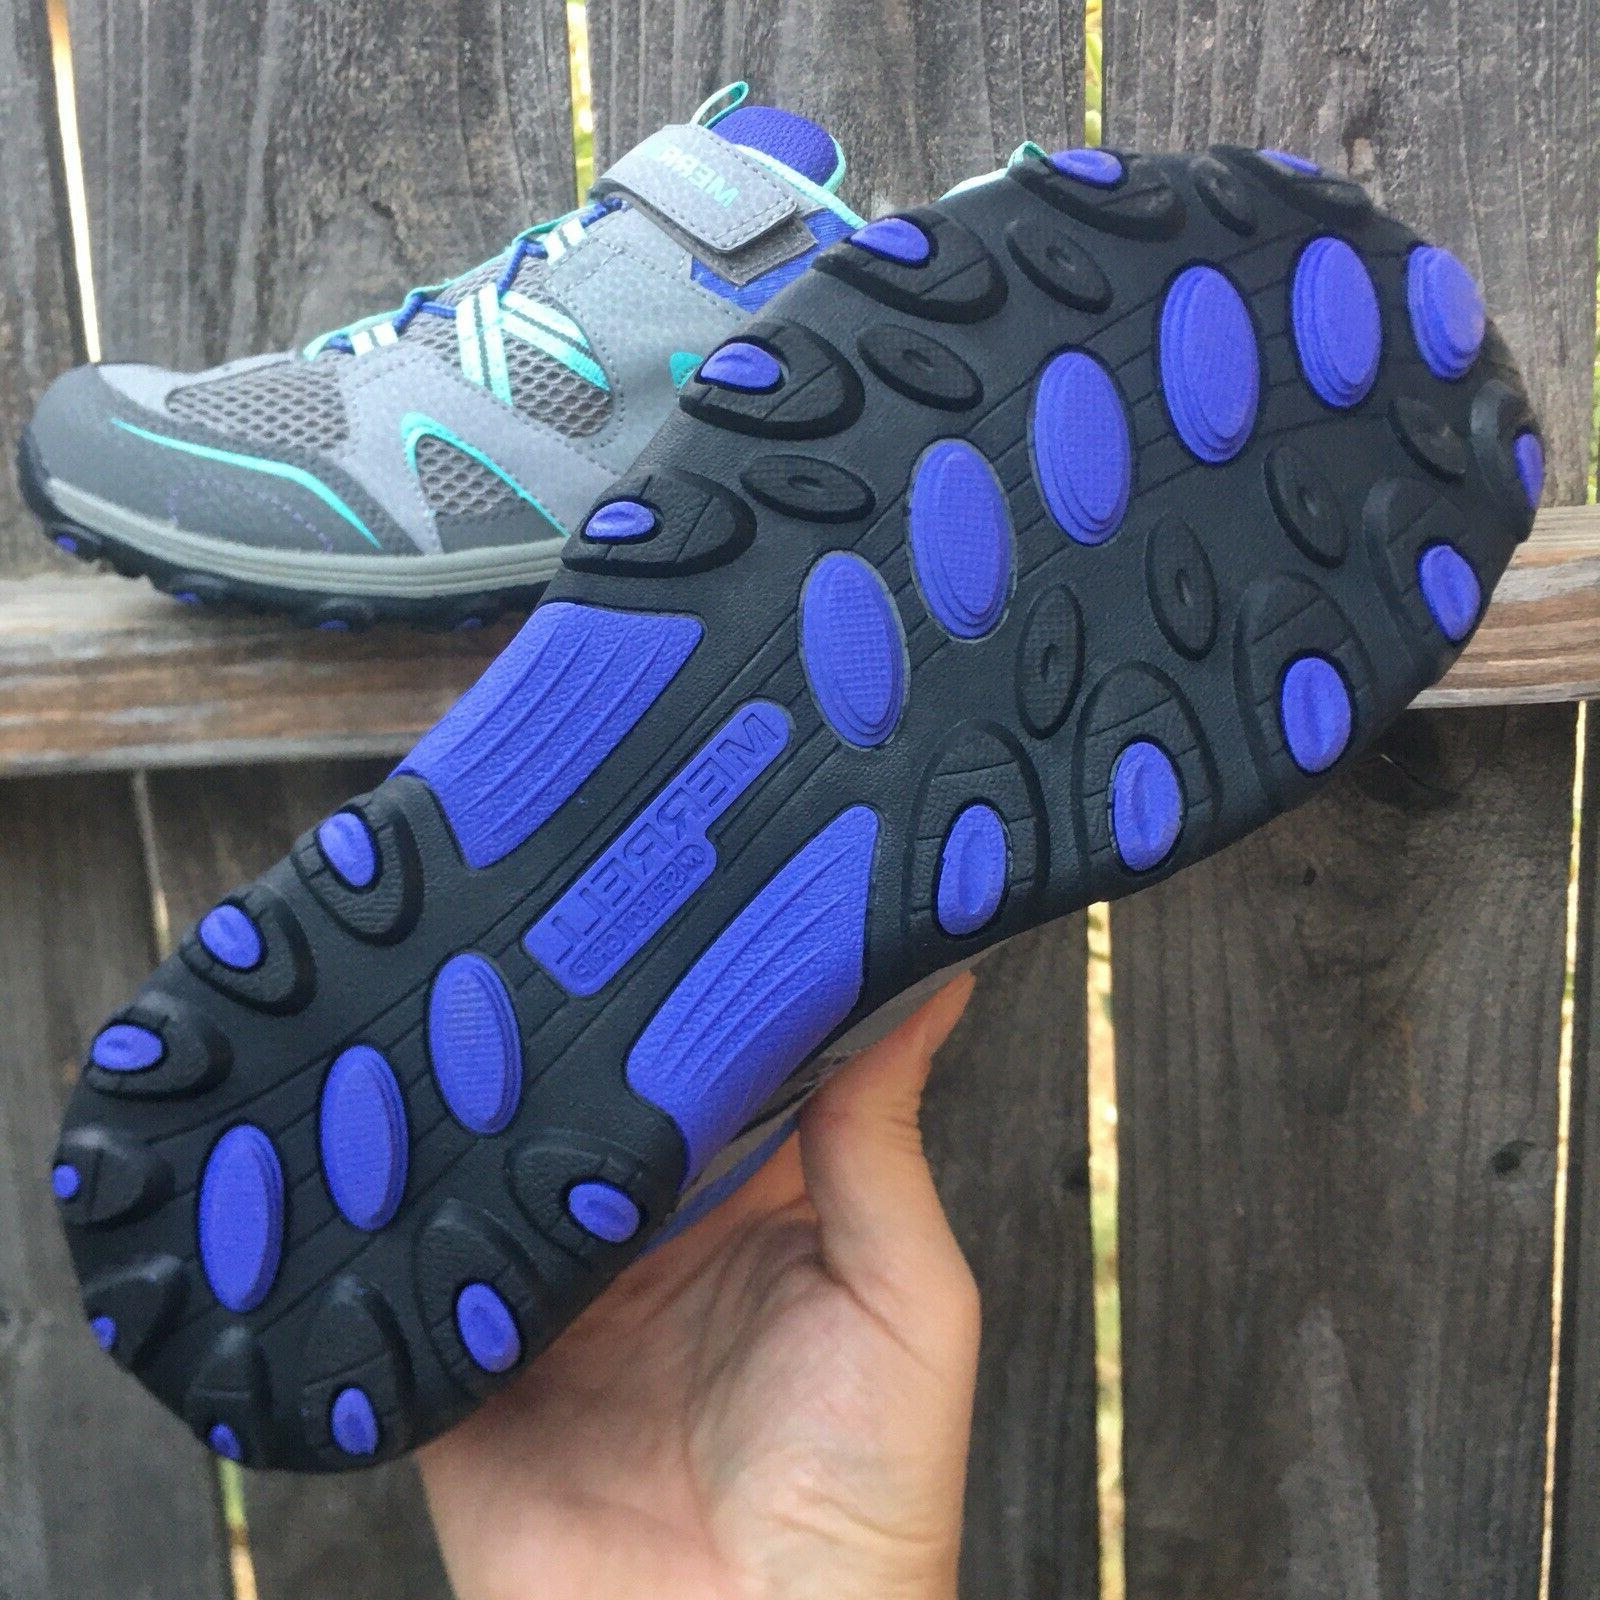 Merrell Shoes Trail Chaser